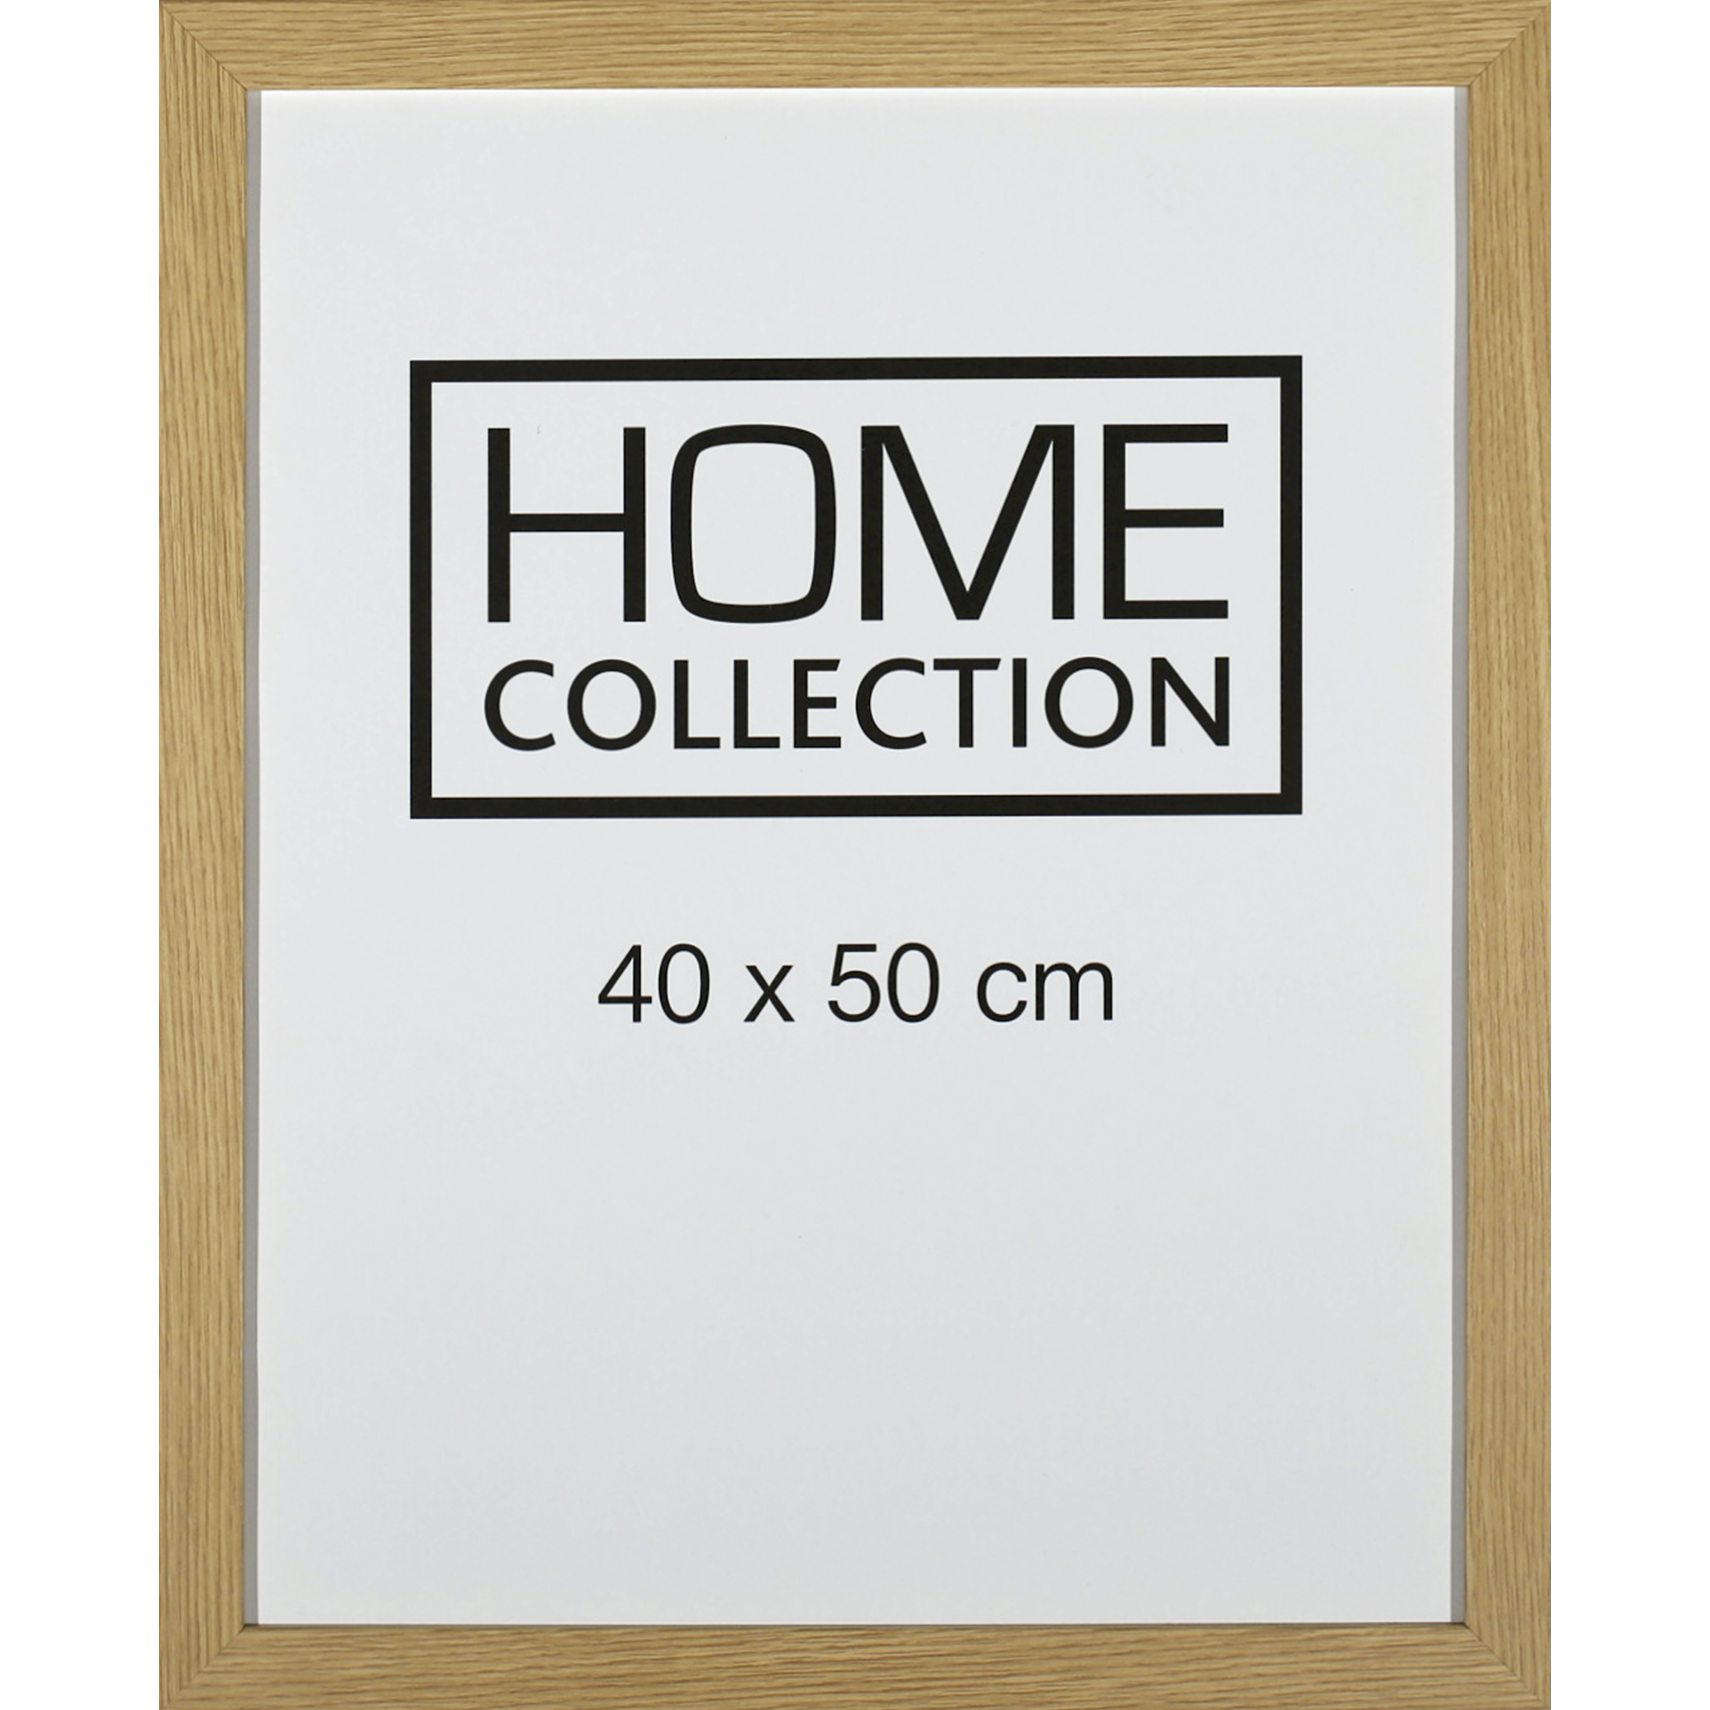 HOME COLLECTION Ram 40 x 50 x 2 cm - Ram i ekträ